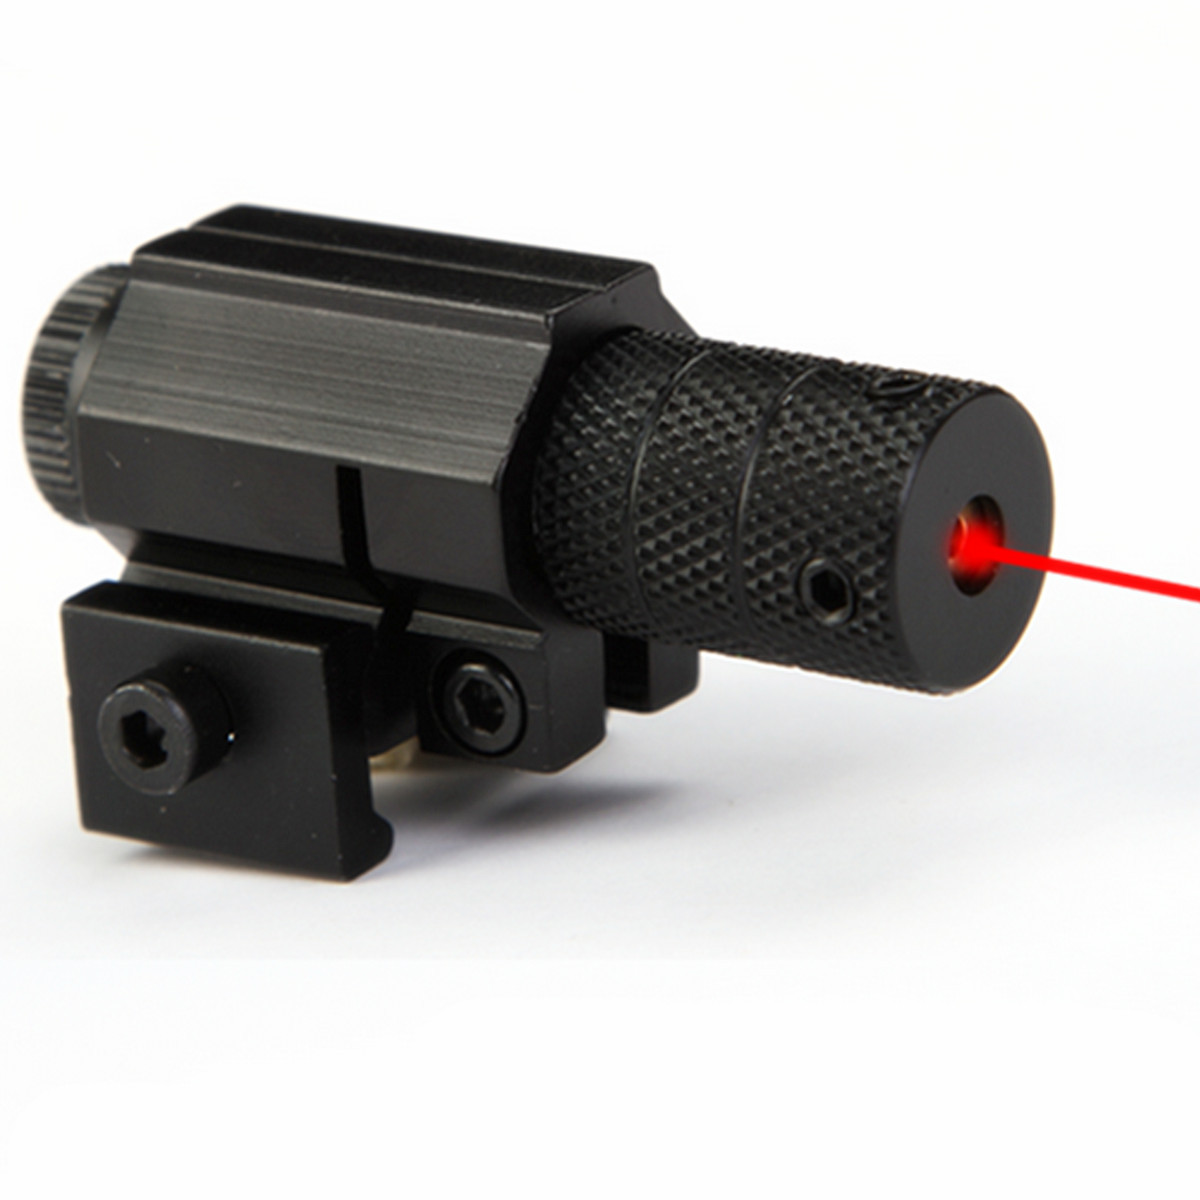 100m 835-655mm Tactical Aiming Red Beam Dot Laser Bore Sight Scope With Mount for Gun Rifle Pistol tactical 4x32 red optics fiber rifle scope picatinny rail adapter hunting shooting rbo m5135